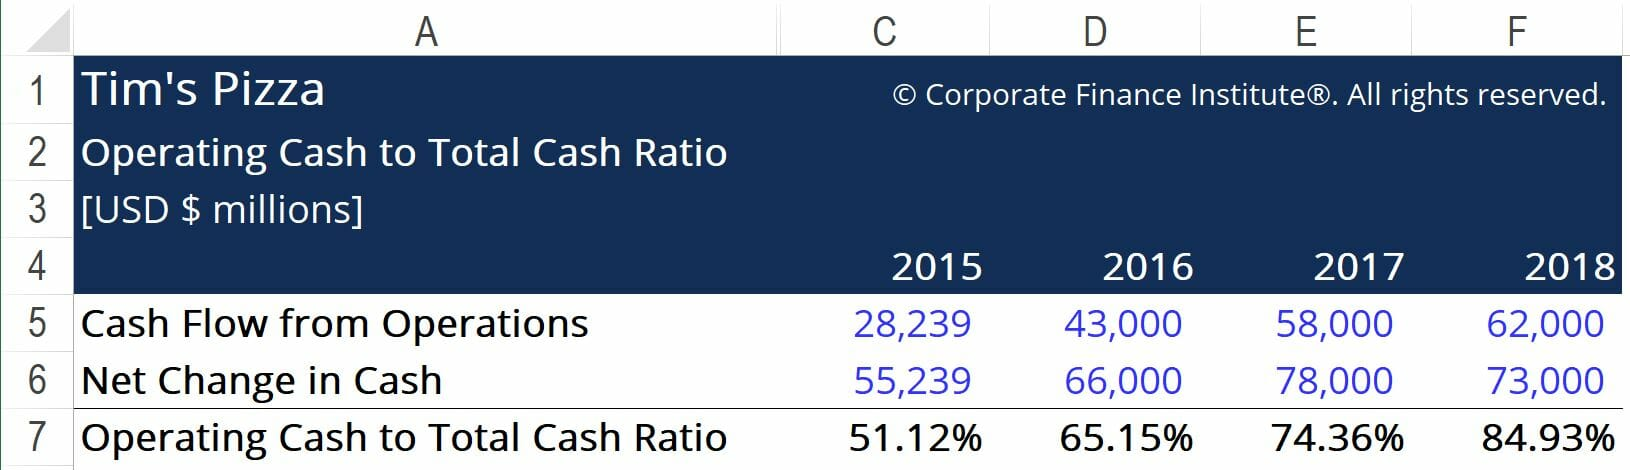 Operating Cash to Total Cash Ratio - Ex1